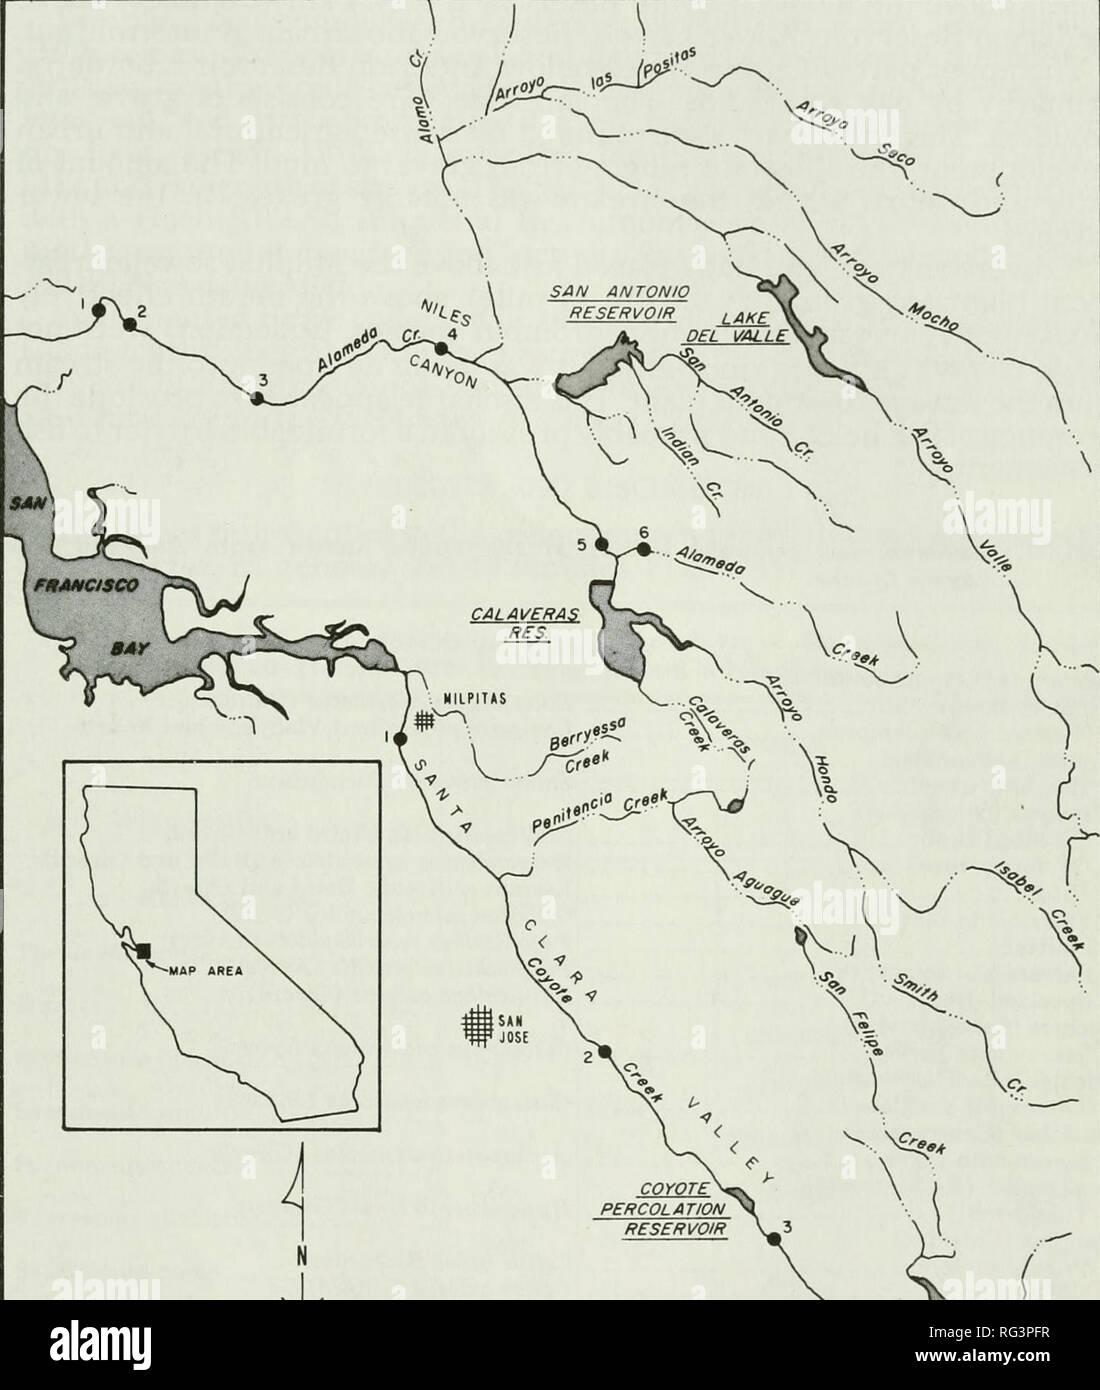 . California fish and game. Fisheries -- California; Game and game-birds -- California; Fishes -- California; Animal Population Groups; Pêches; Gibier; Poissons. OCCURRENCE OF NATIVE FISHES 197. ^^ :^ ANDERSON RESERVOIR FIGURE 1. Location of 1973 collection stations on Alameda and Coyote creeks. Coyote Creek Coyote Creek also drains the Diablo Mountains and flows through the long Santa Clara Valley, emptying at the extreme southernmost point of San Francisco Bay (Figure 1). Three impoundments are on this creek: Coyote, Anderson, and Coyote Percolation reservoirs. Our 1973 collections. Please n - Stock Image